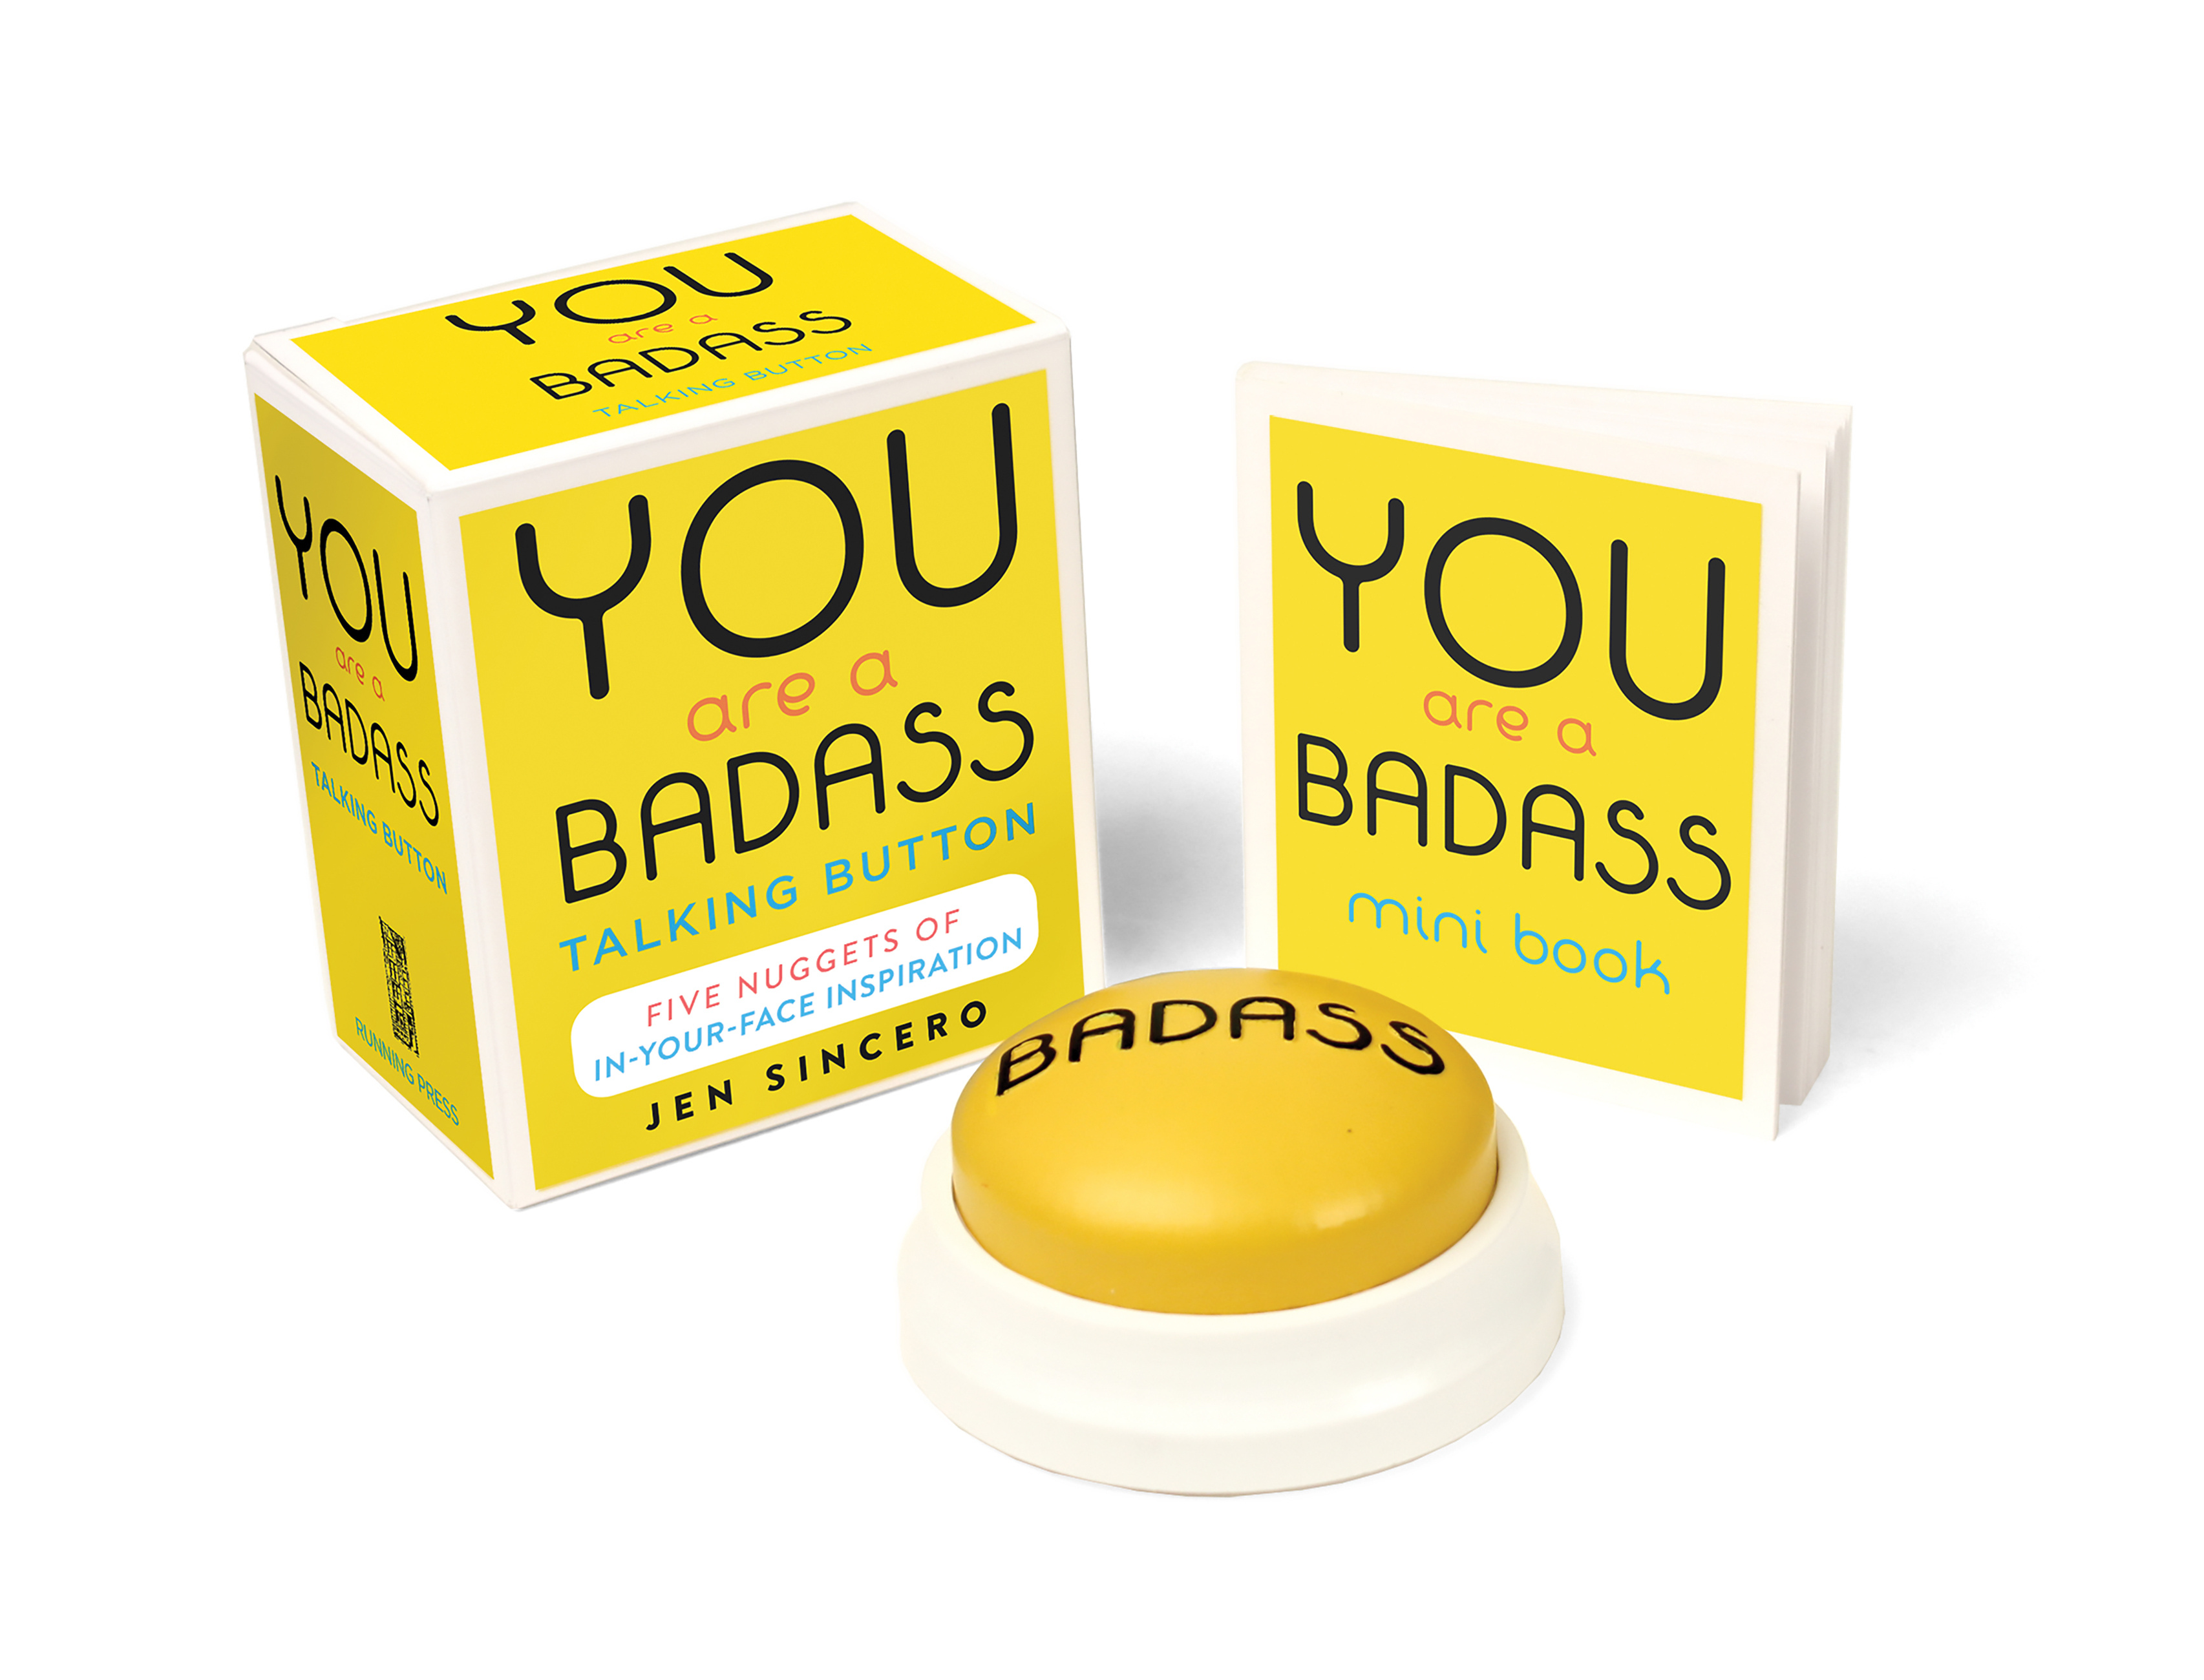 You Are a Badass Talking Button: Five Nuggets of In-Your-Face Inspiration